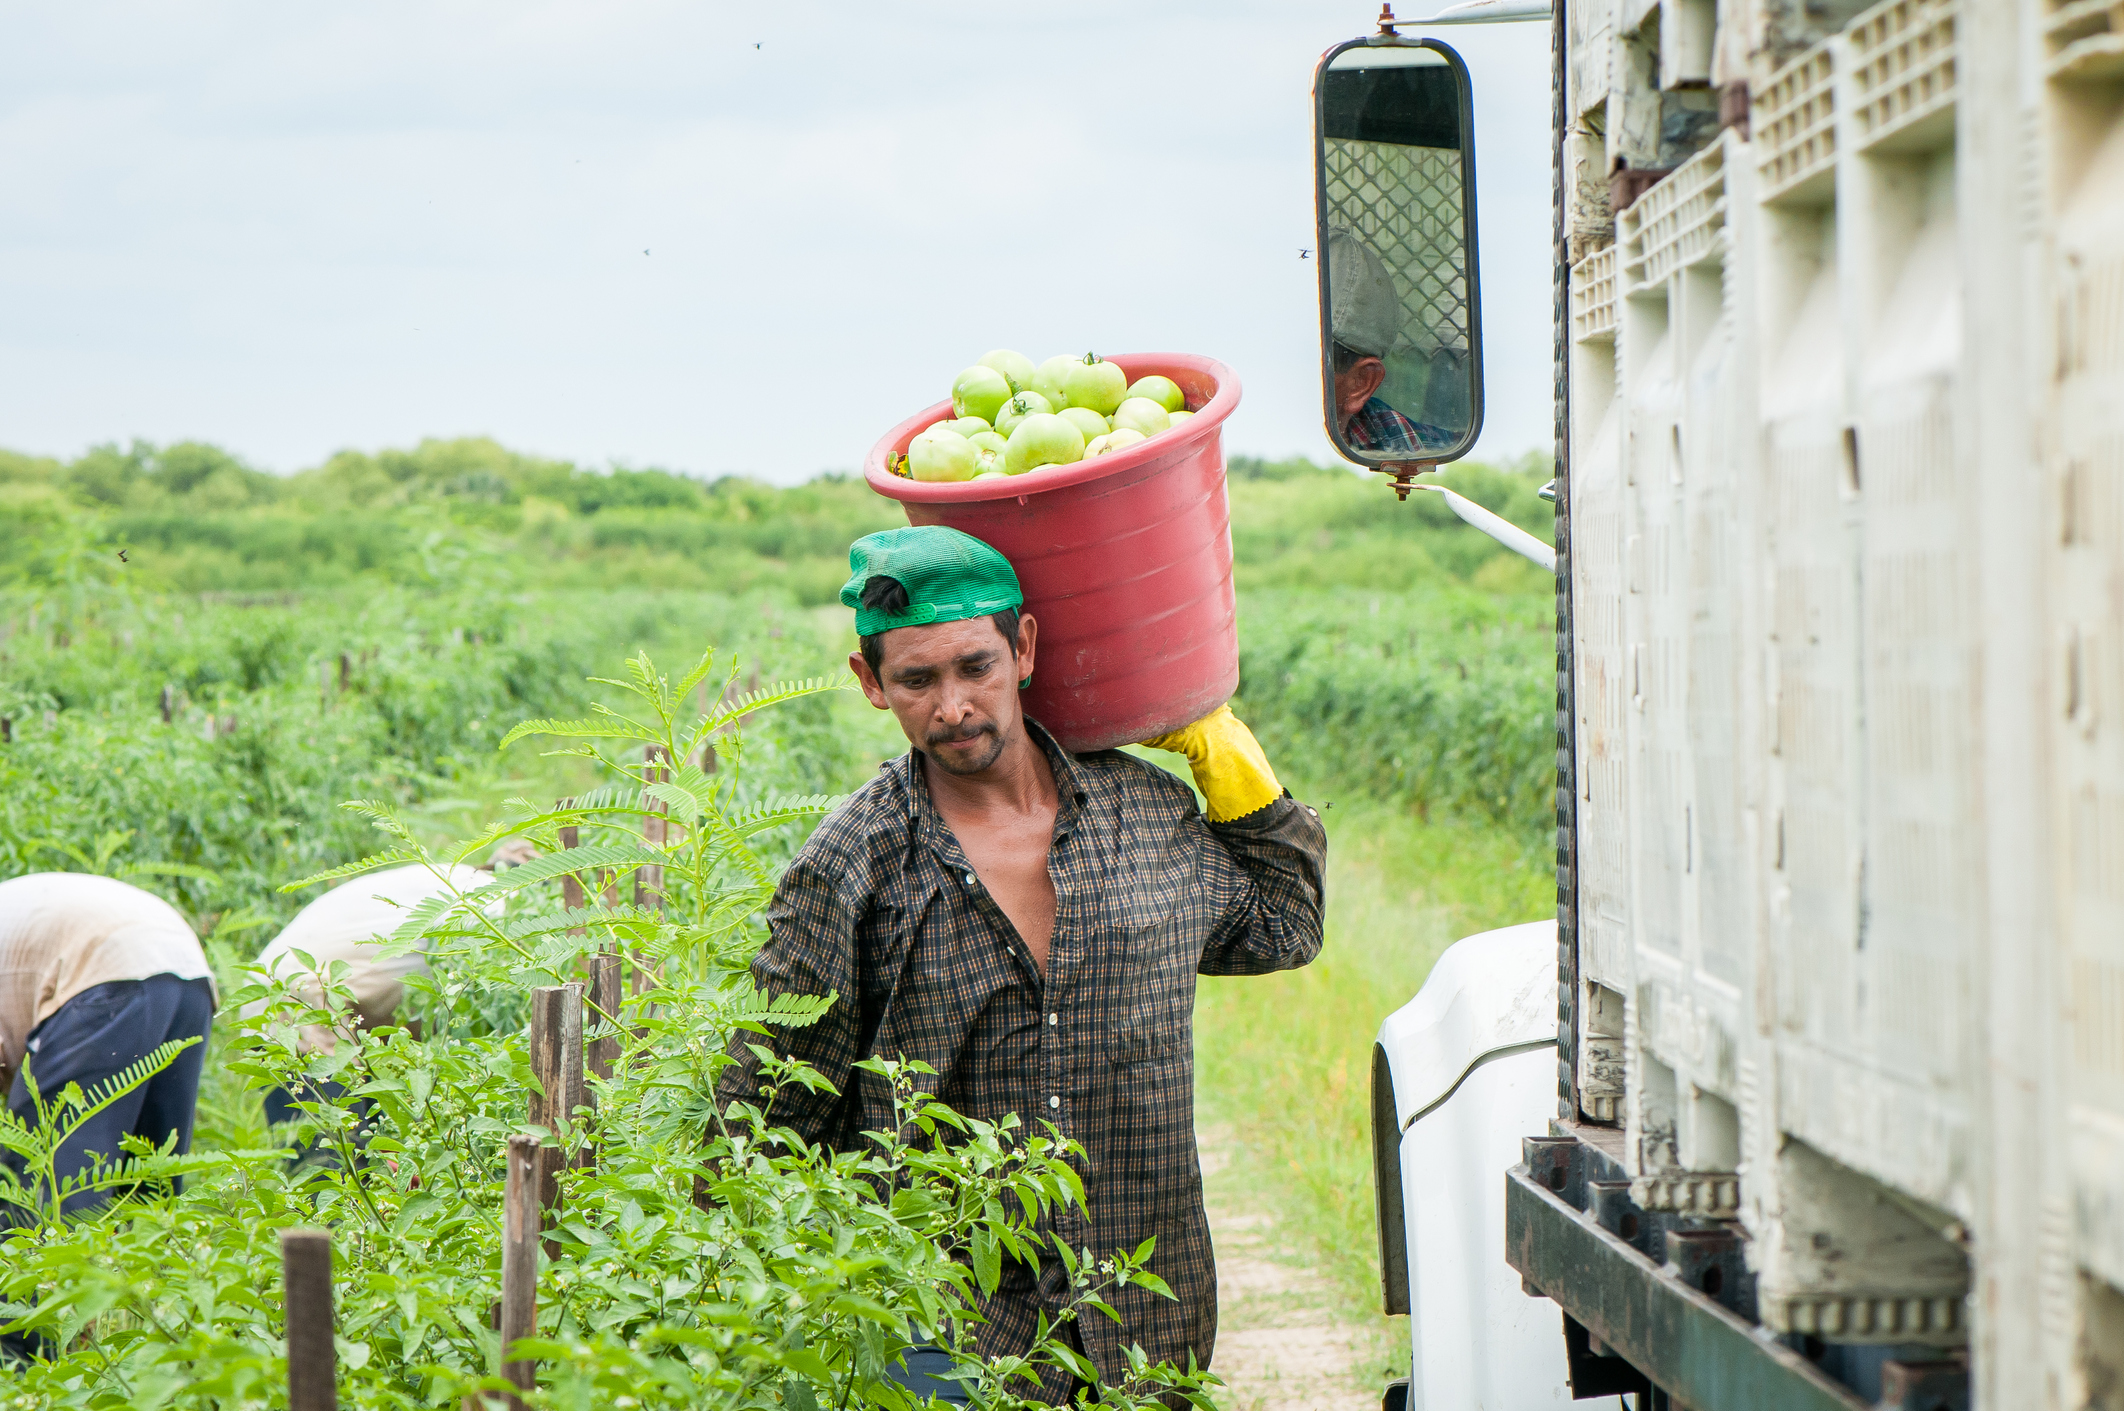 Migrant farm worker carrying a bucket of fruits on one shoulder in a field